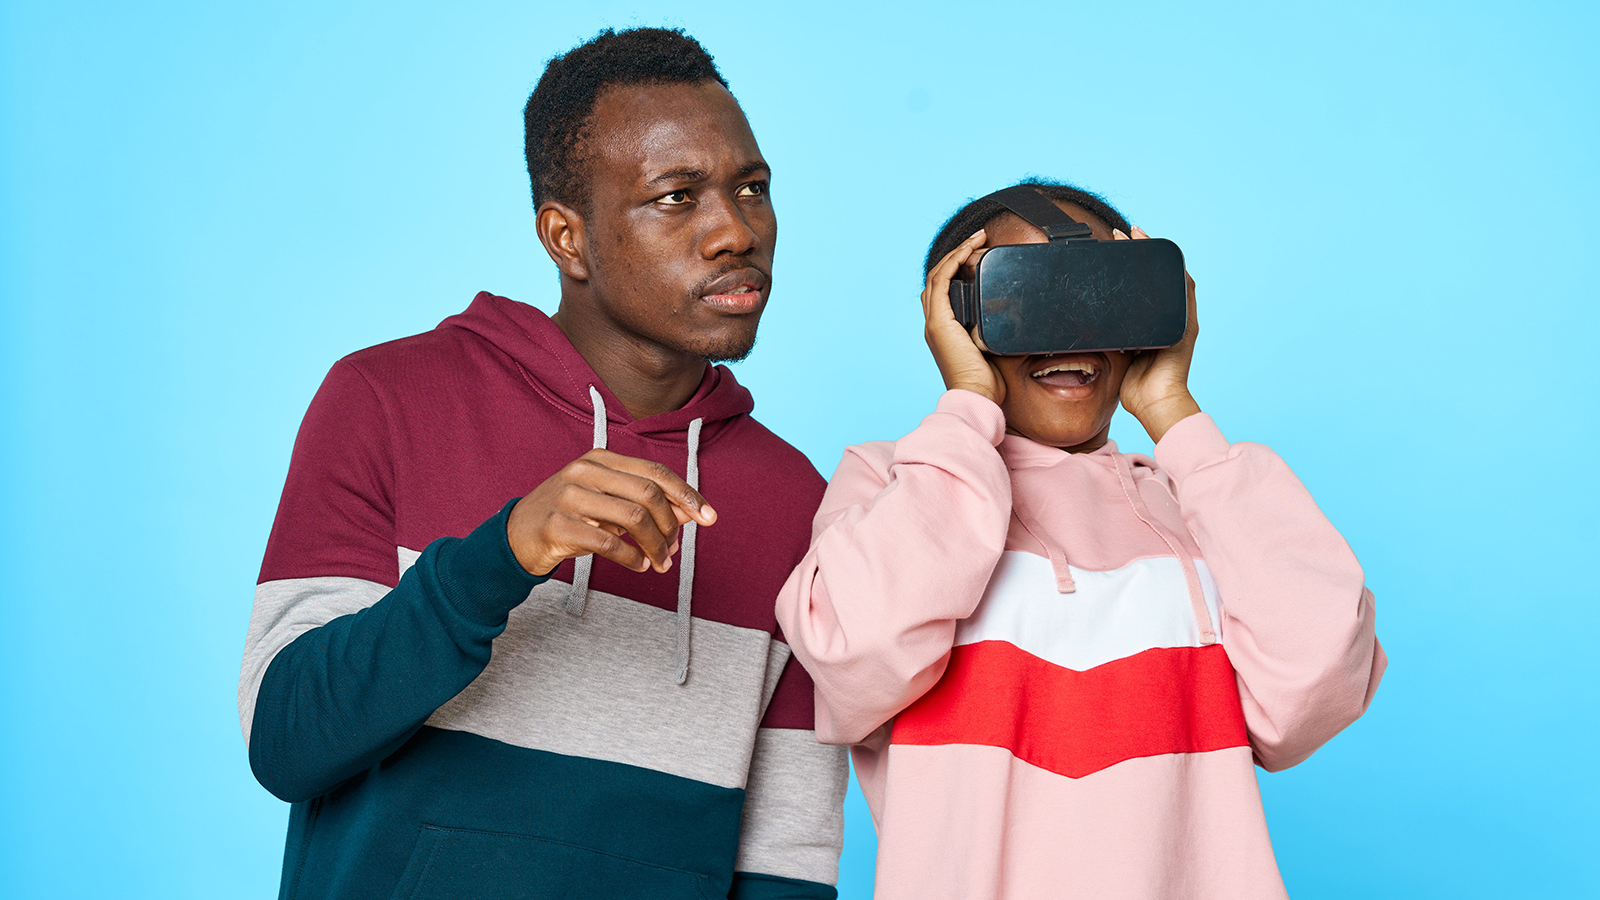 Child wearing VR headset with Father watching